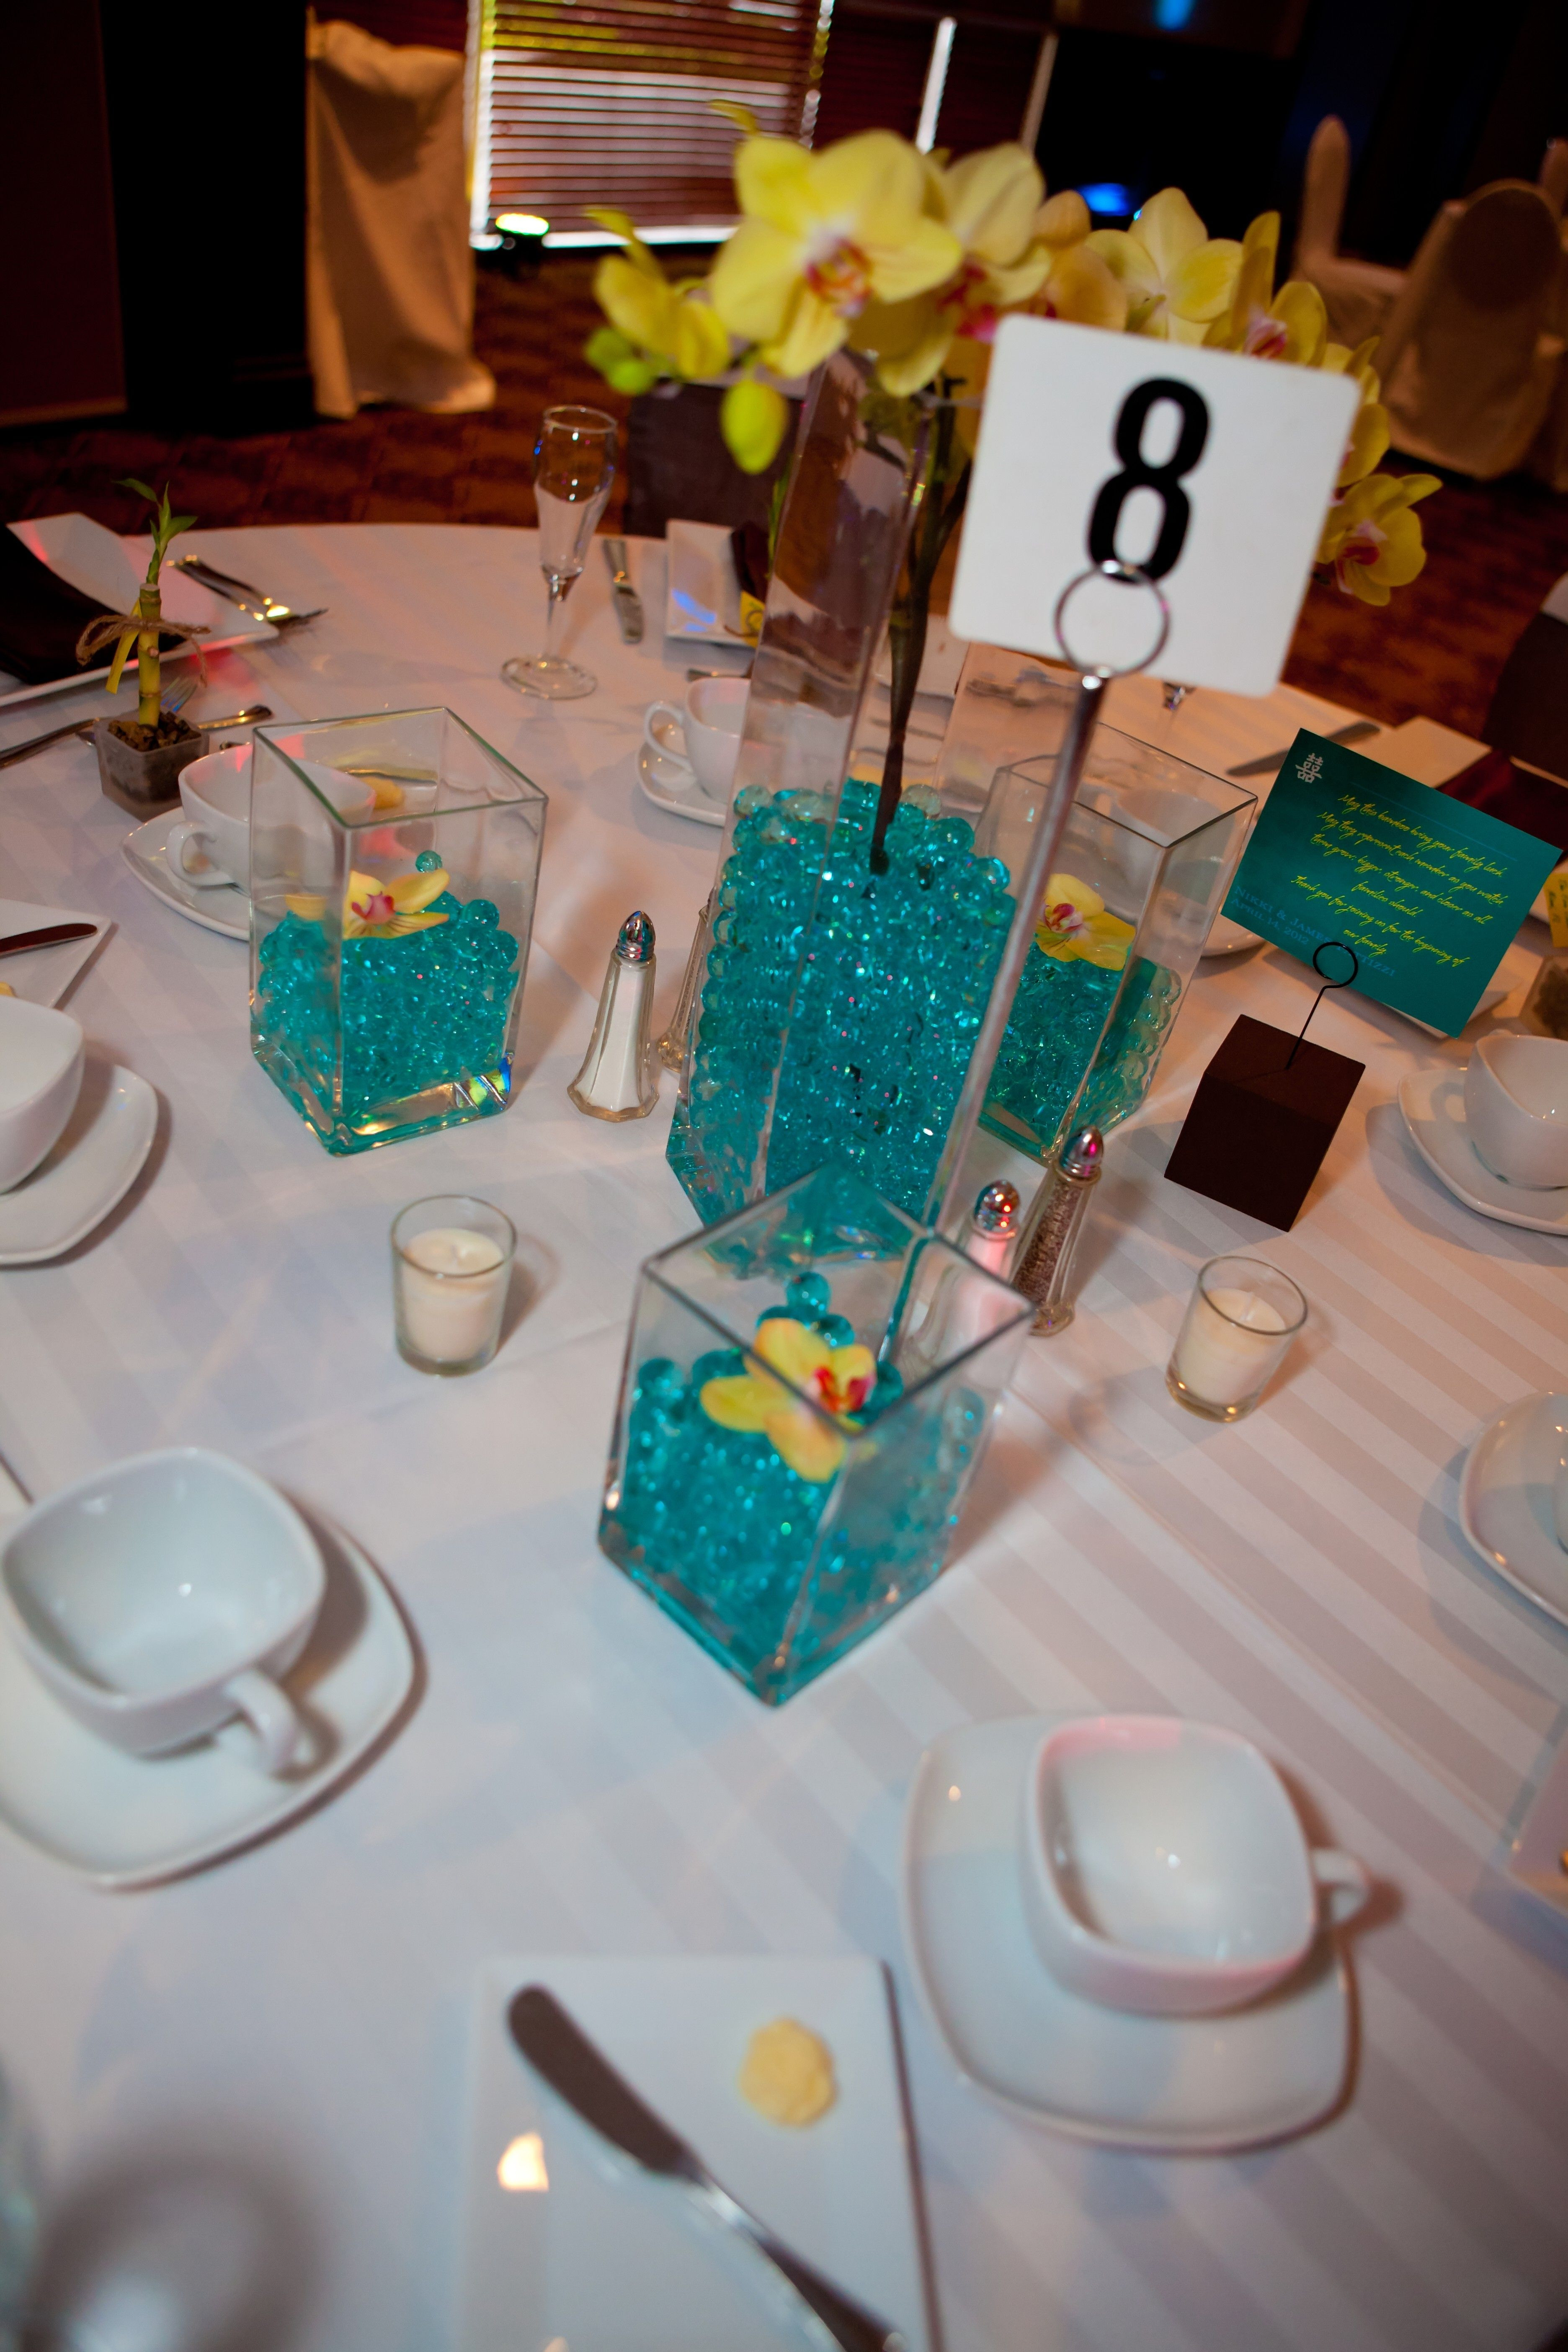 7 inch square vase of wedding centerpieces square vases teal water beads yellow for square vases teal water beads yellow orchids candles